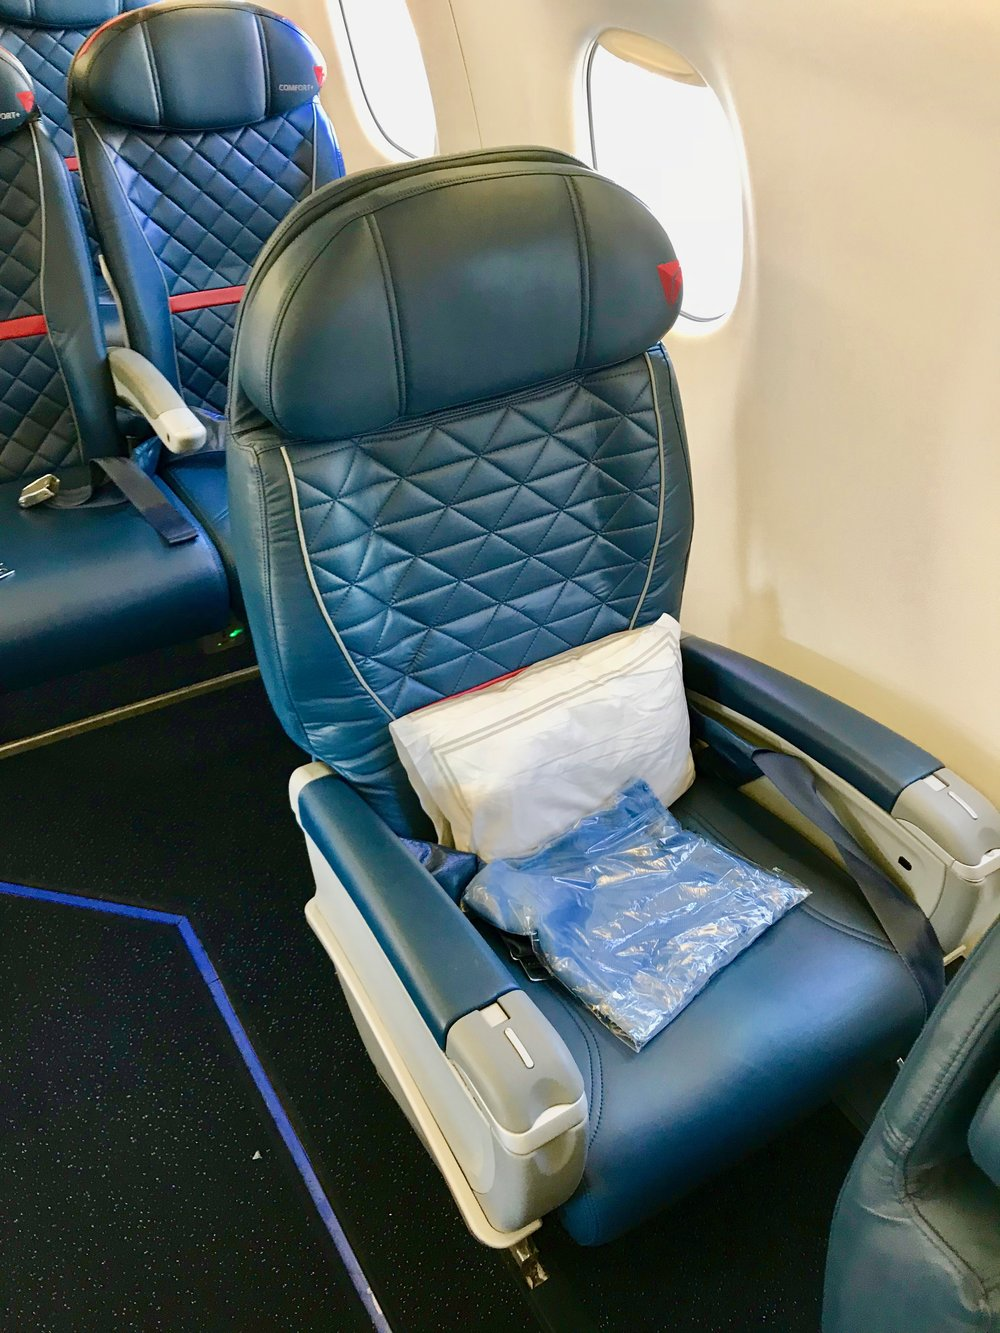 Seat 5A is directly behind the last single-seat in First Class (pictured). Seat 5A has additional legroom and easier aisle access due to the position of seat 4A. There is a power outlet under the seat.